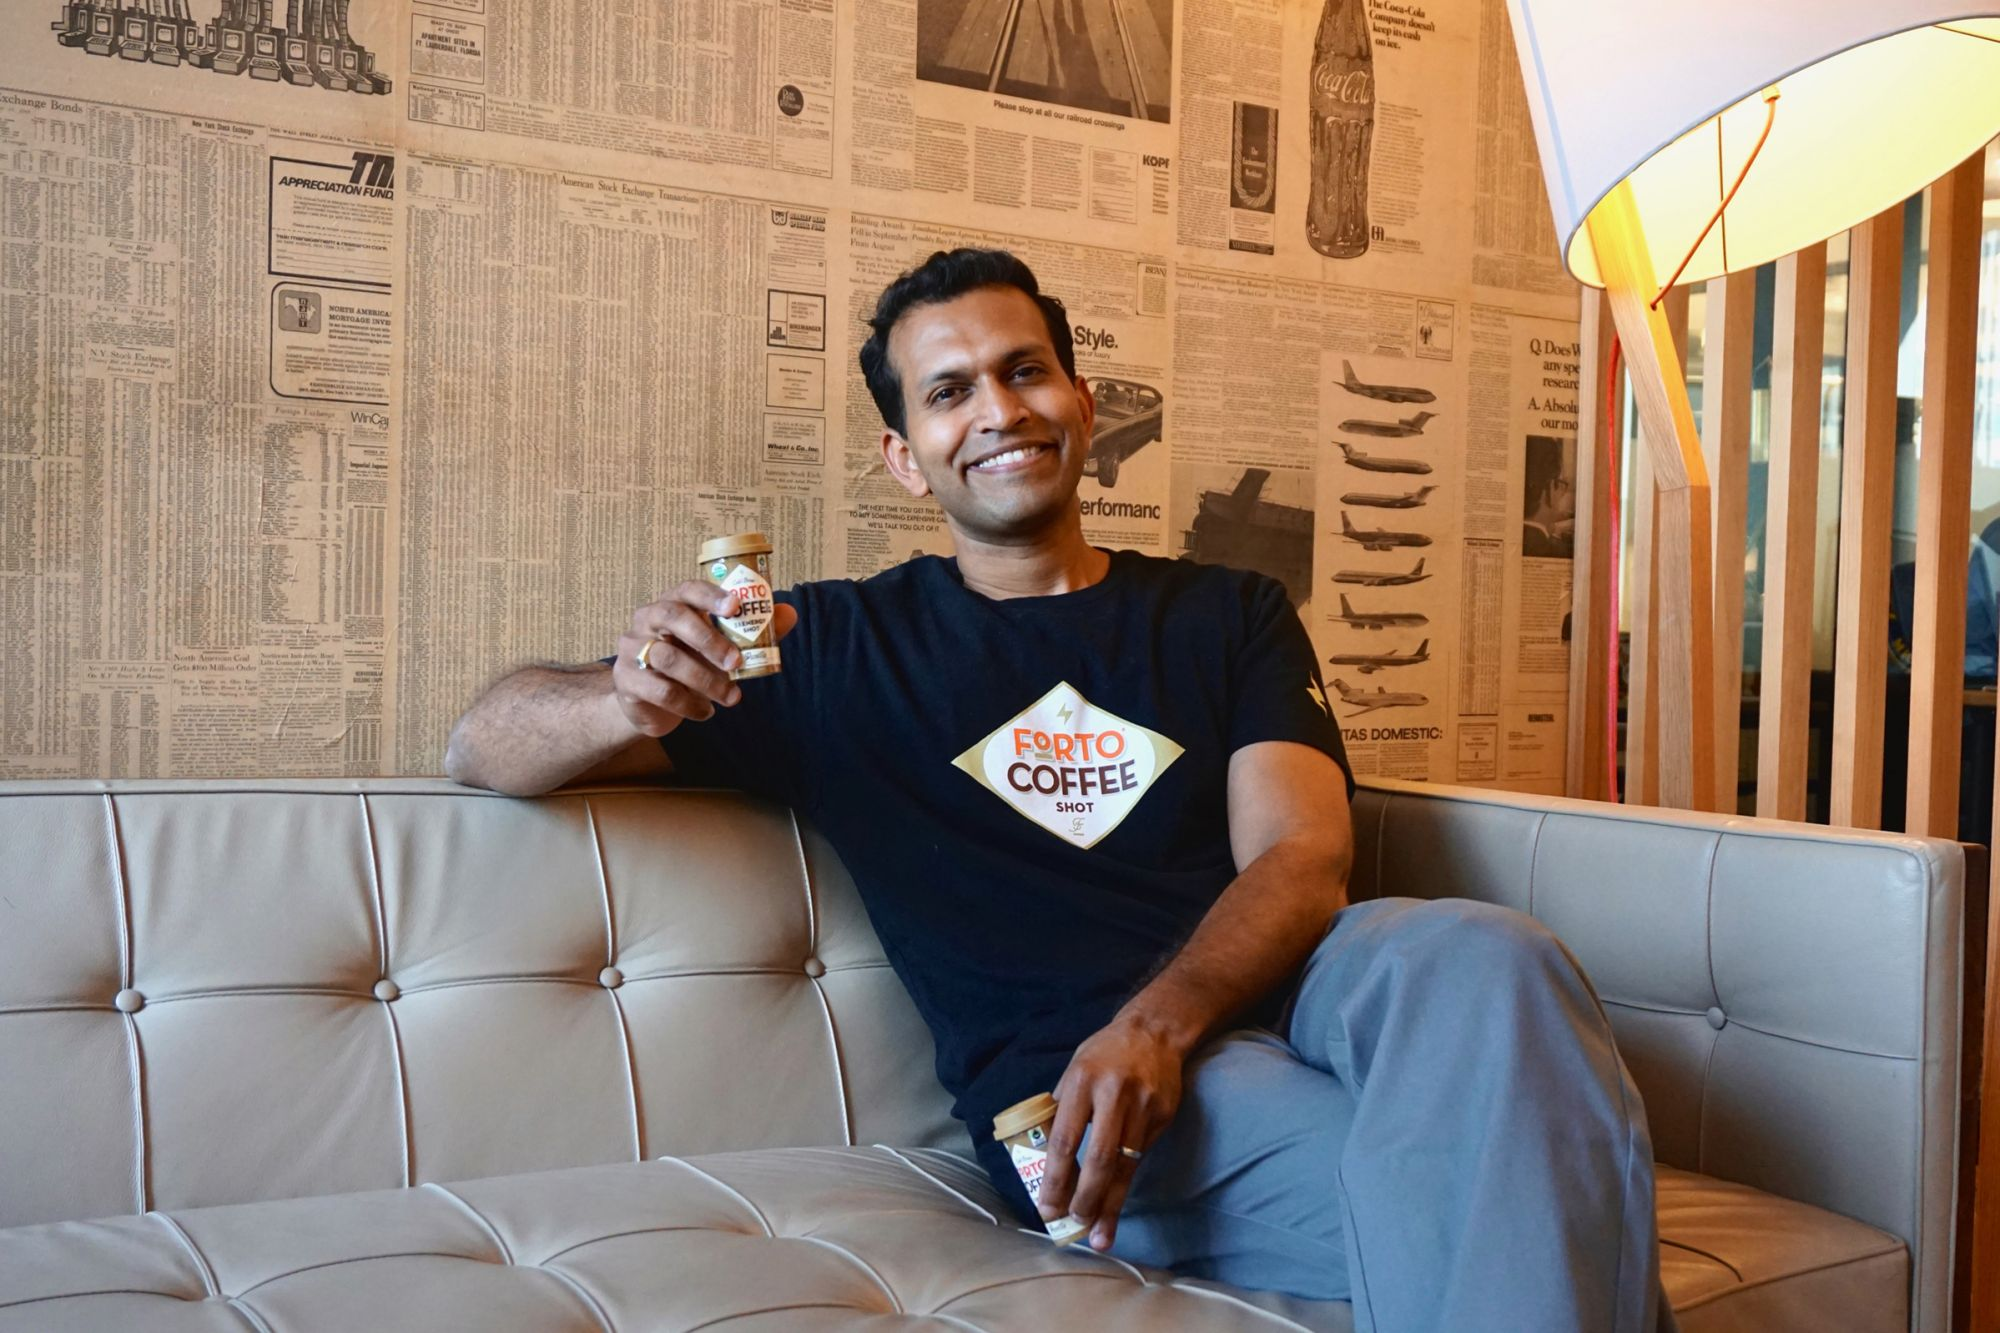 This Entrepreneur Bet His Existing Business to Launch a Coffee-Shot Brand